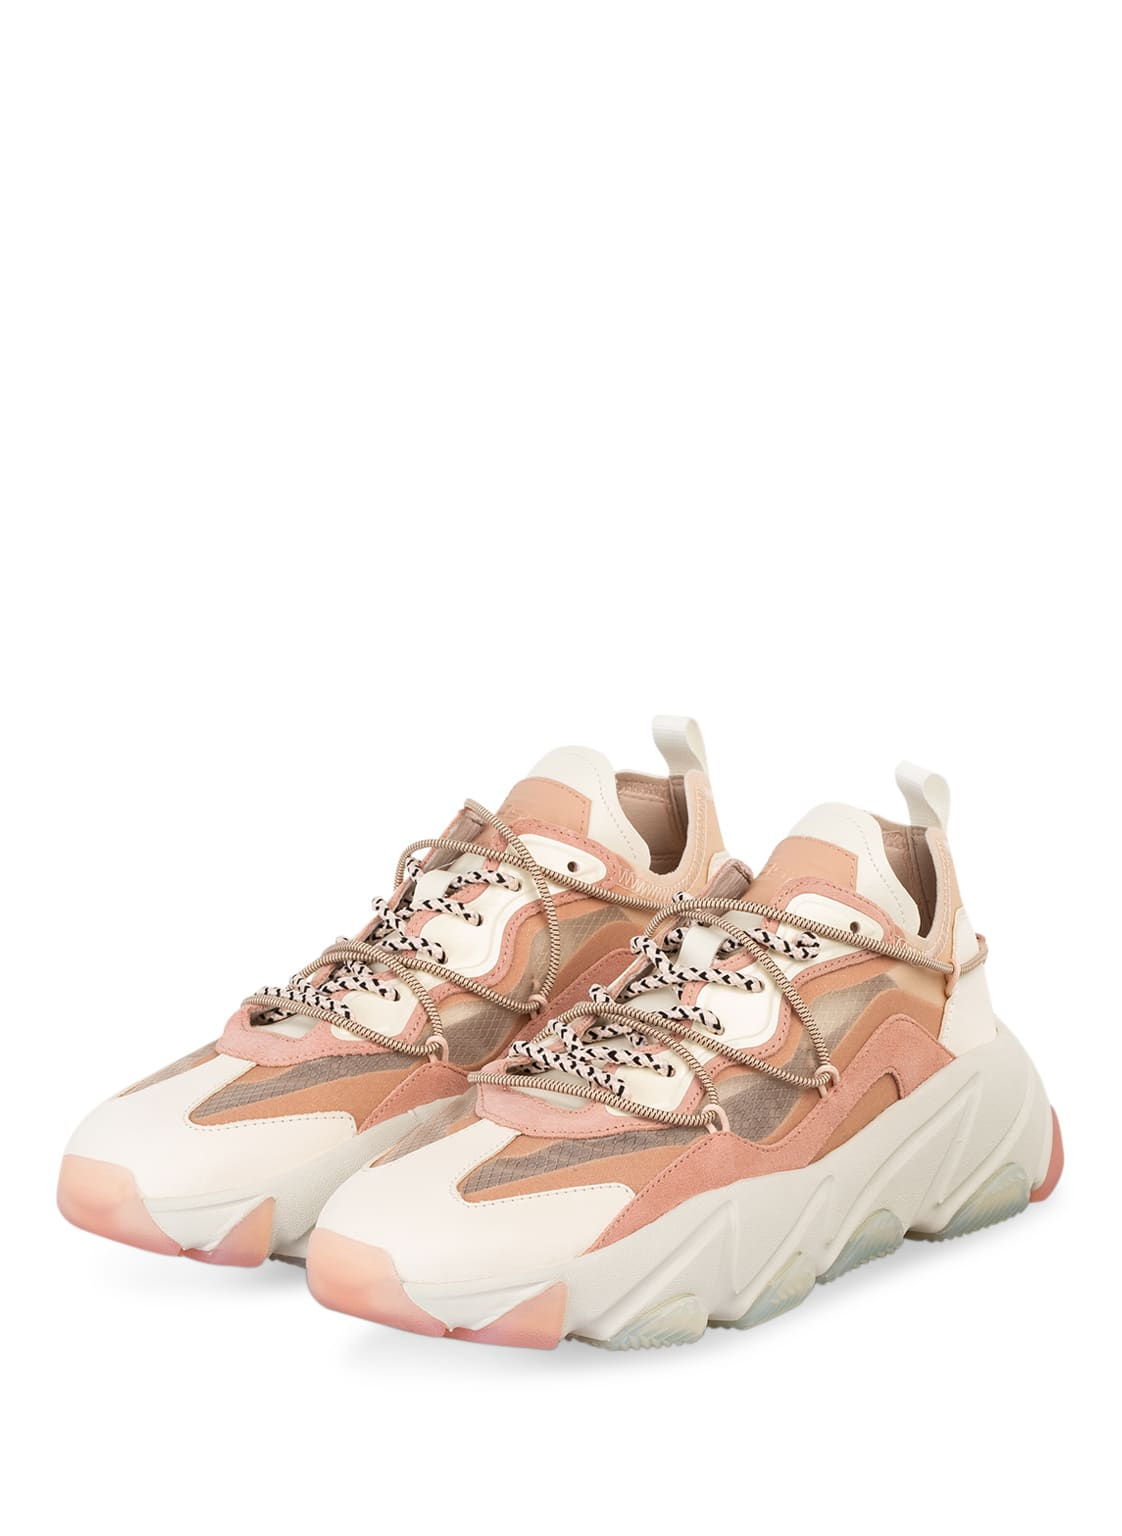 Image of Ash Plateau-Sneaker Extrabis rosa